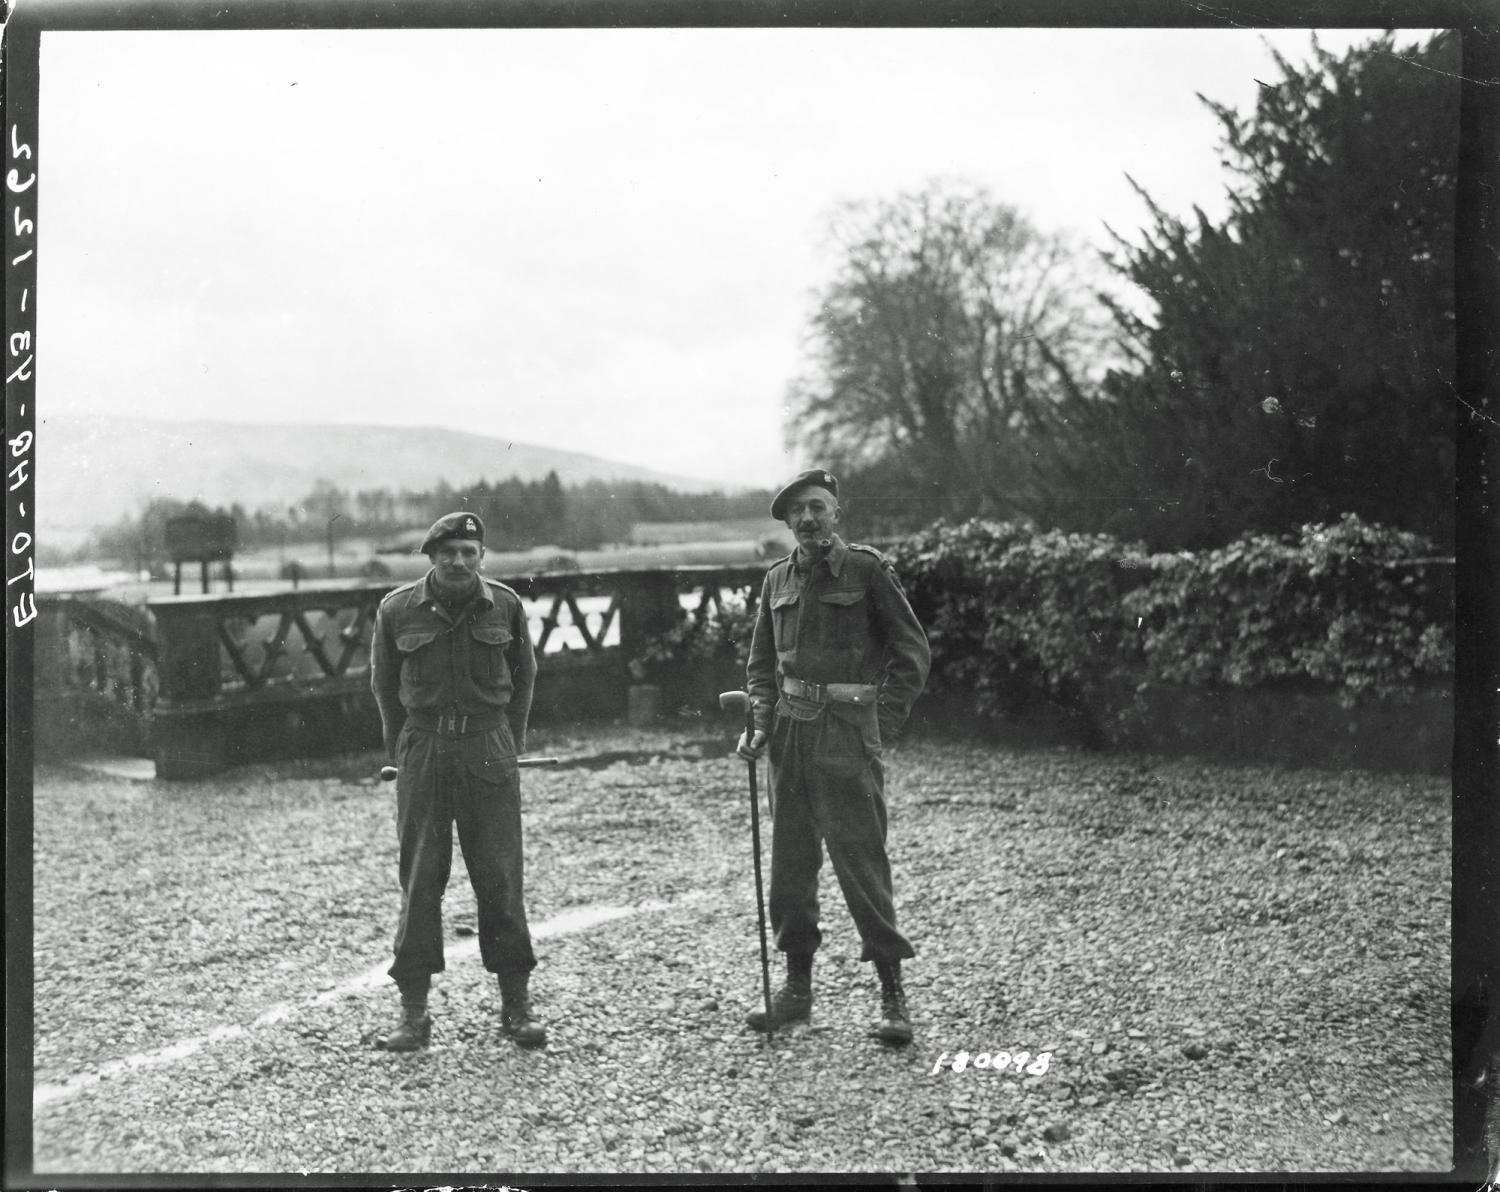 Major Cockcraft,  2 i/c CBTC, and Captain Viscount De Jonghe, Demolition Officer